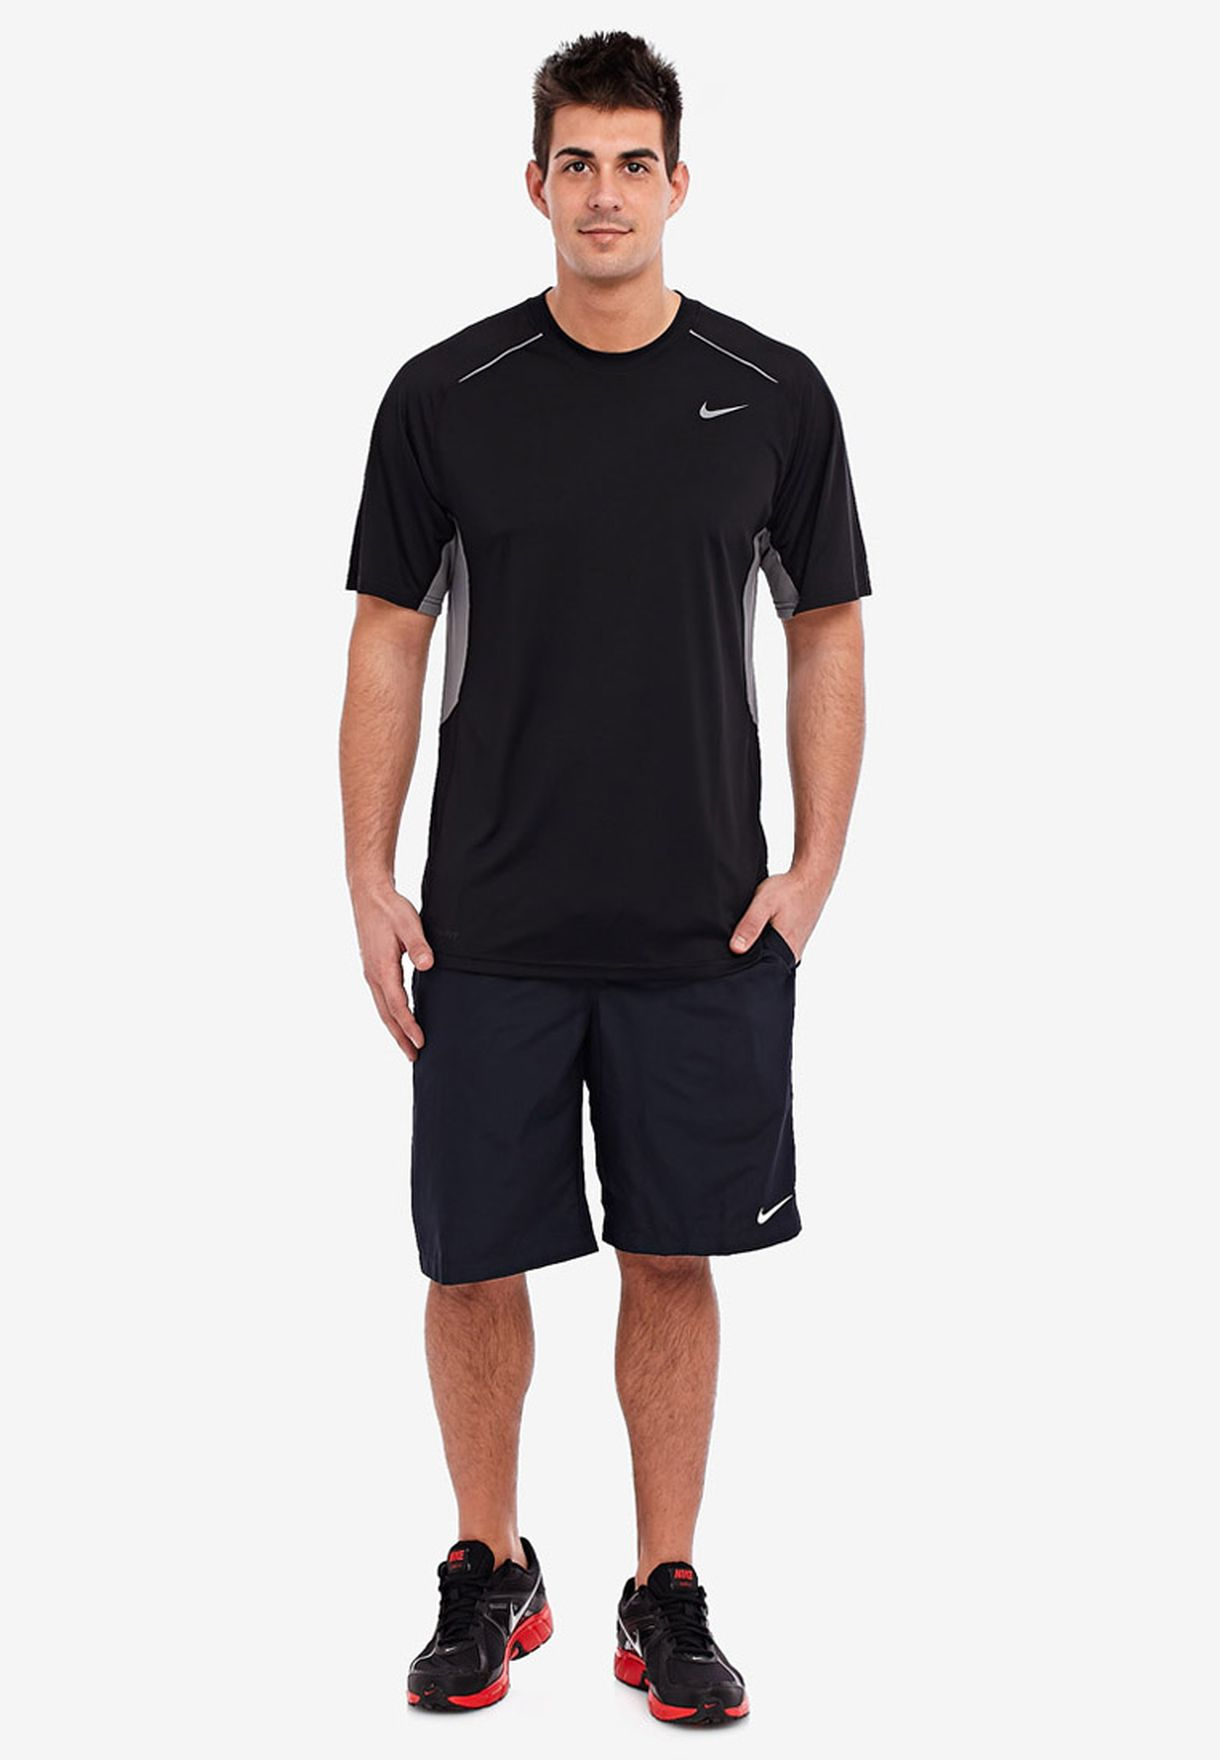 Intestinos Requisitos Caballero amable  Buy Nike black Legacy Ss Top for Men in MENA, Worldwide   519539-010